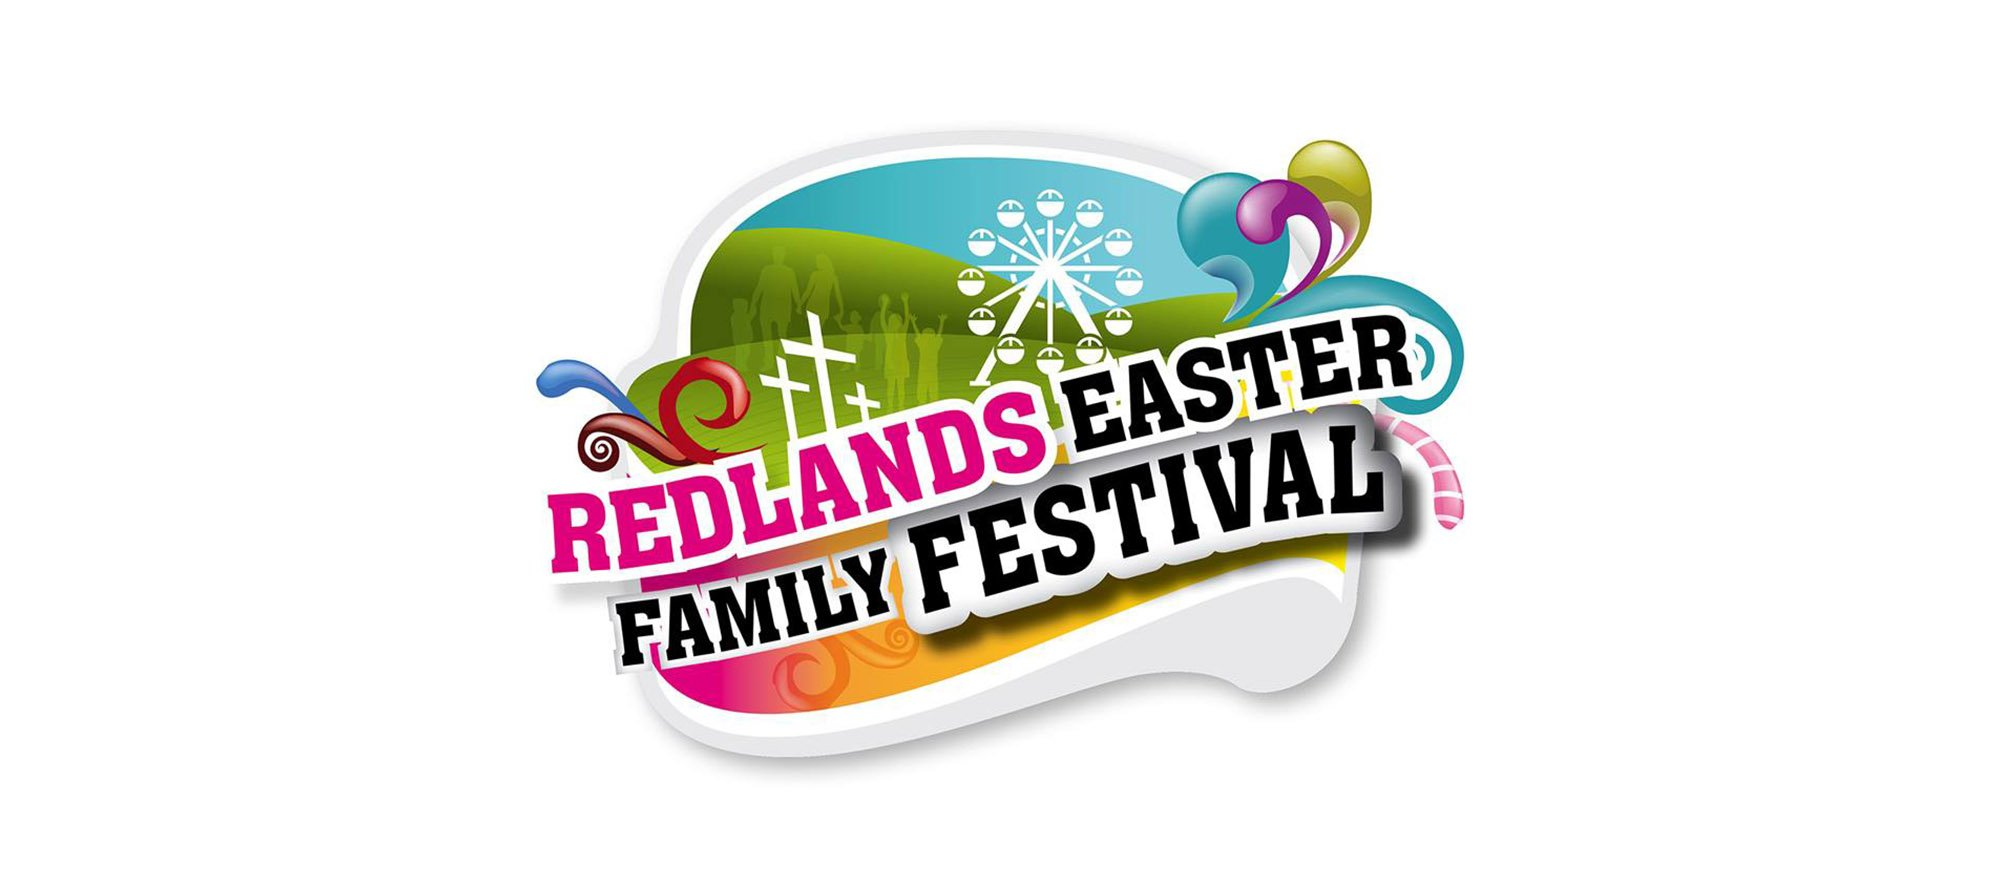 Redlands Family Easter Festival - logo design